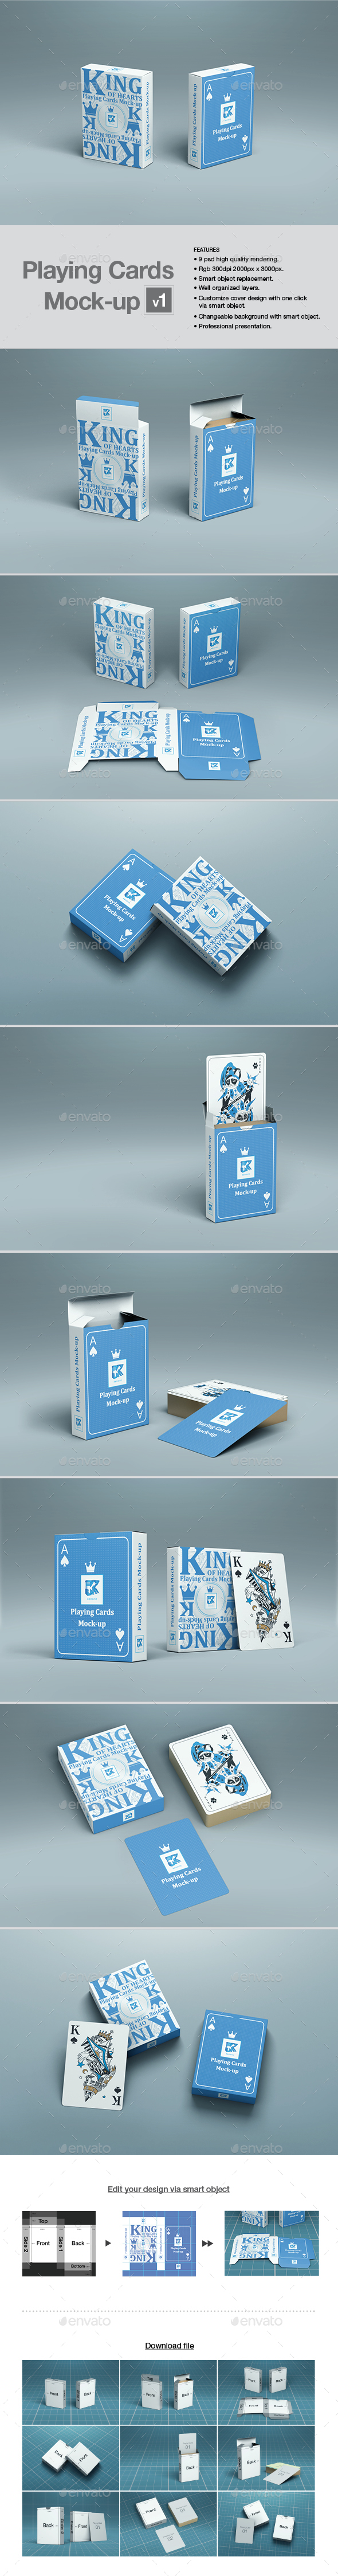 Playing Cards Mock-up v1 - Product Mock-Ups Graphics